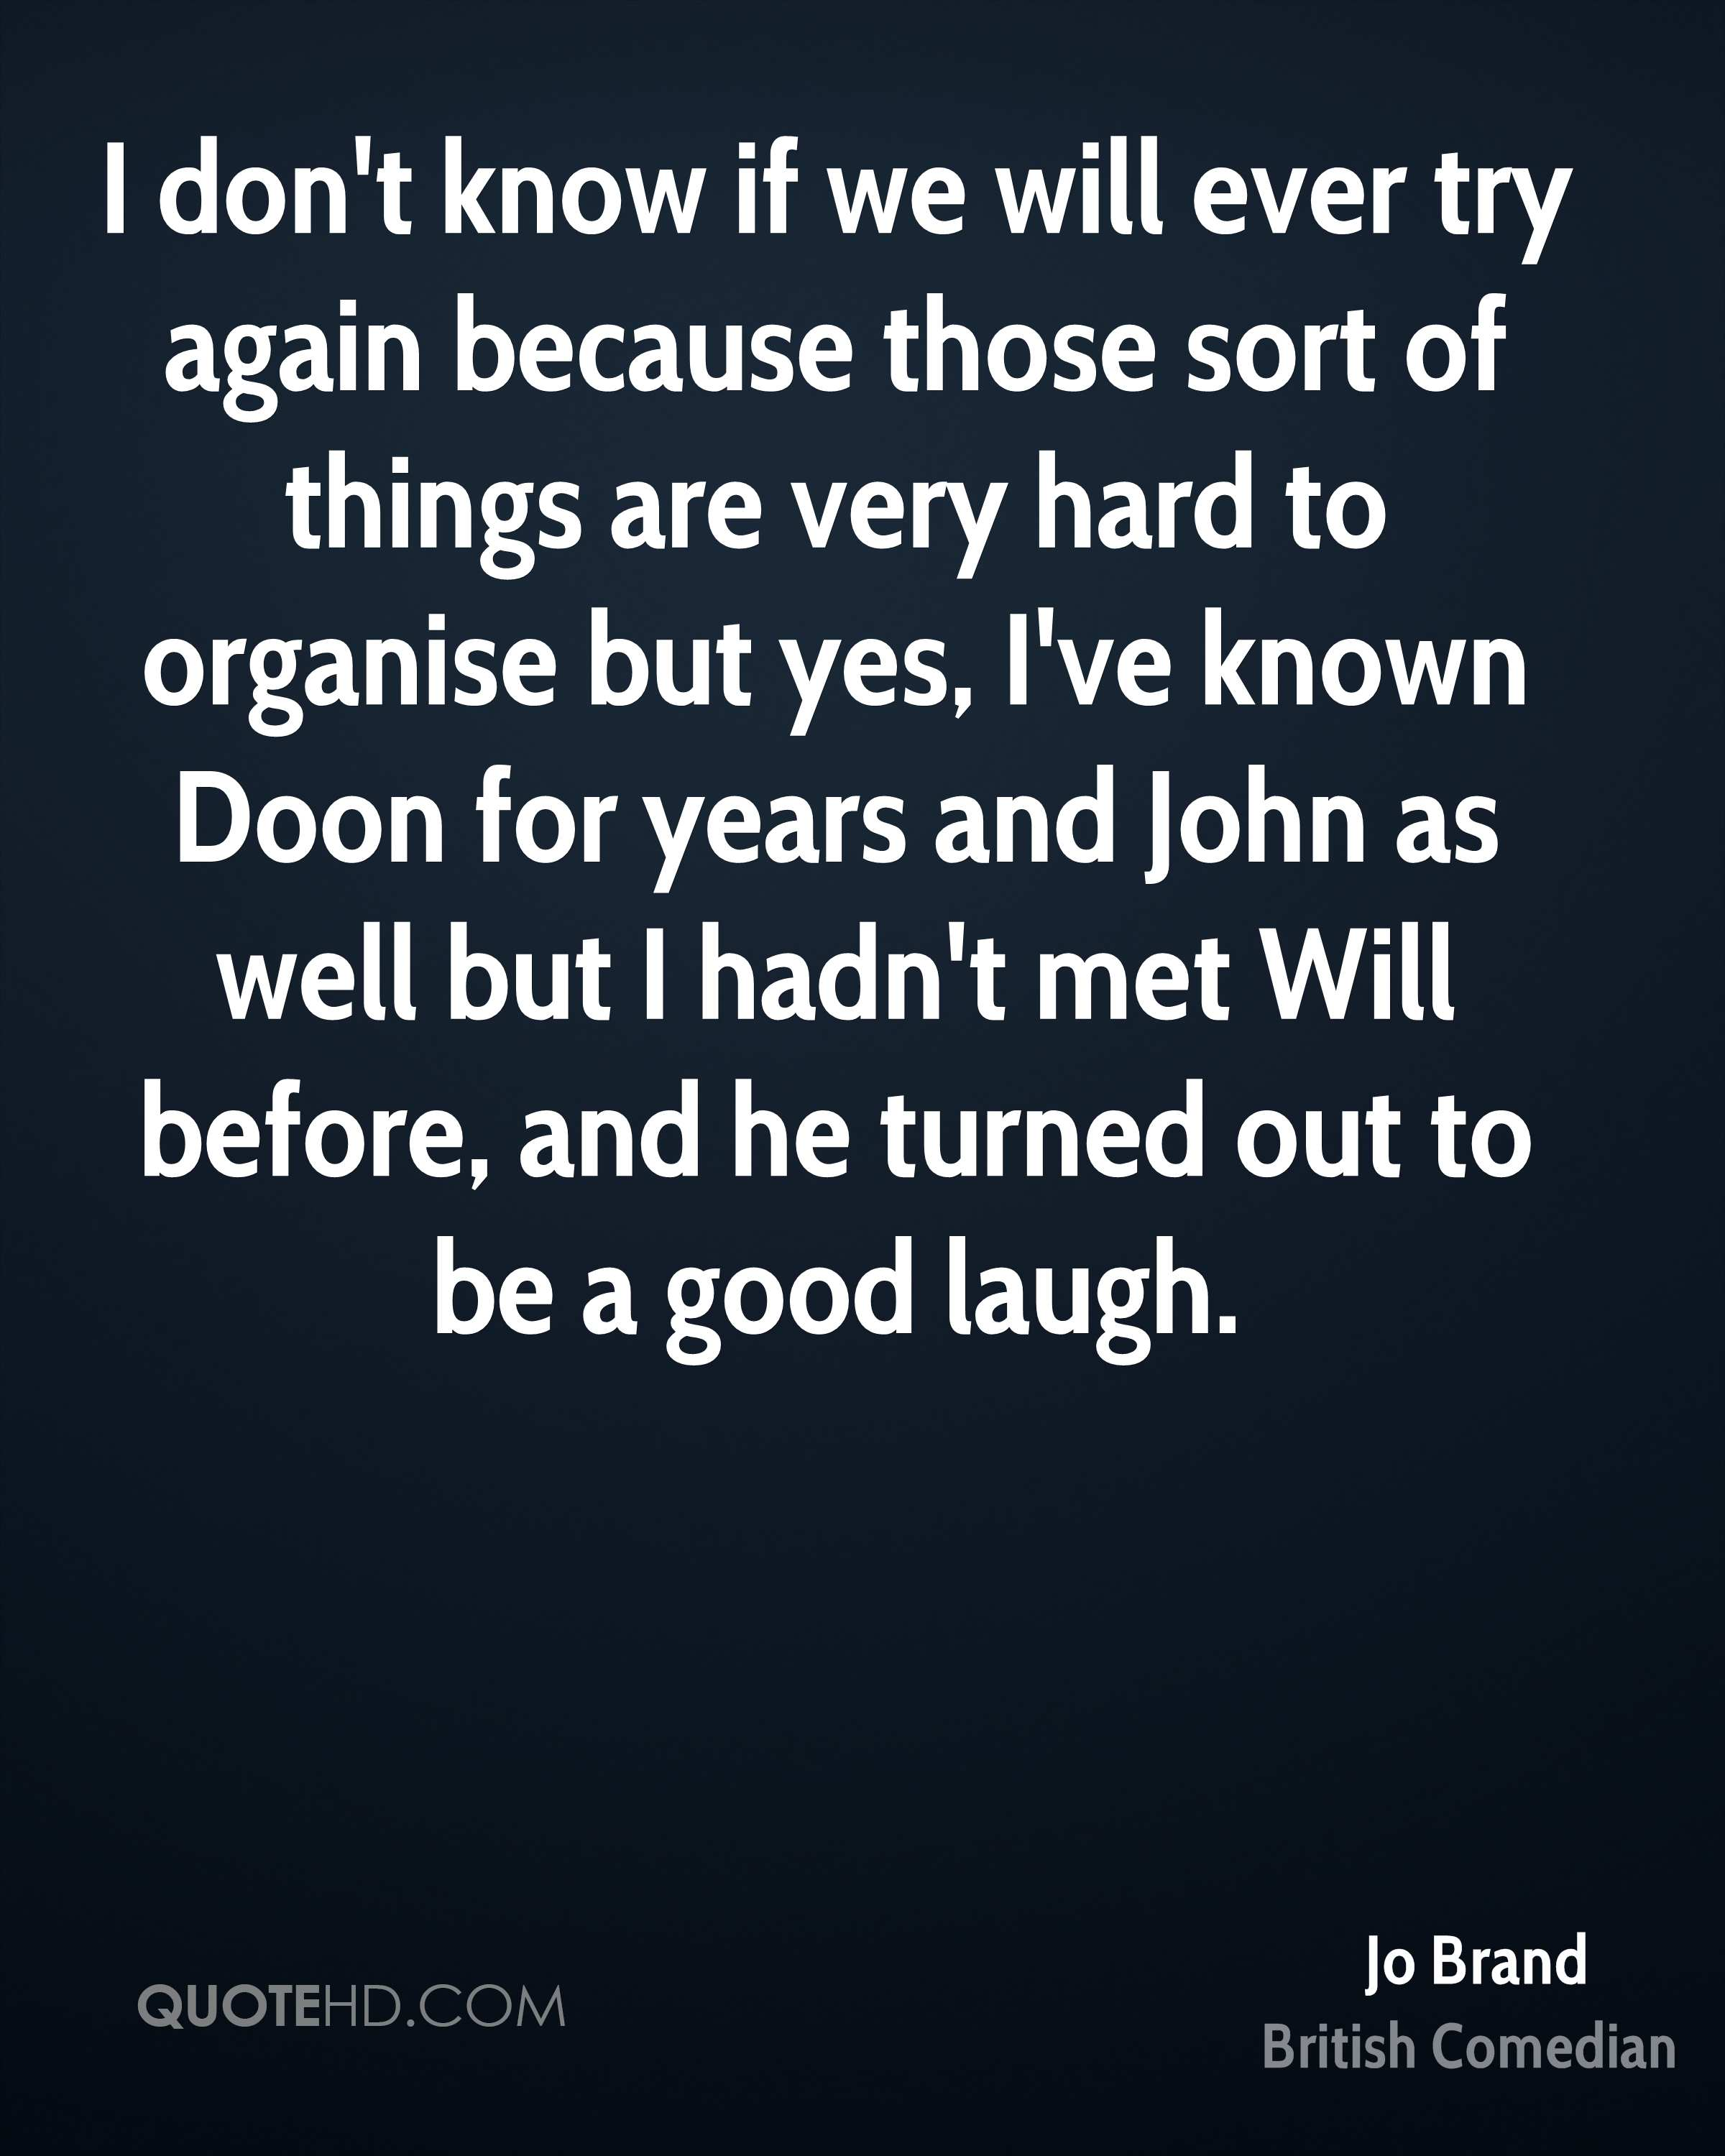 I don't know if we will ever try again because those sort of things are very hard to organise but yes, I've known Doon for years and John as well but I hadn't met Will before, and he turned out to be a good laugh.